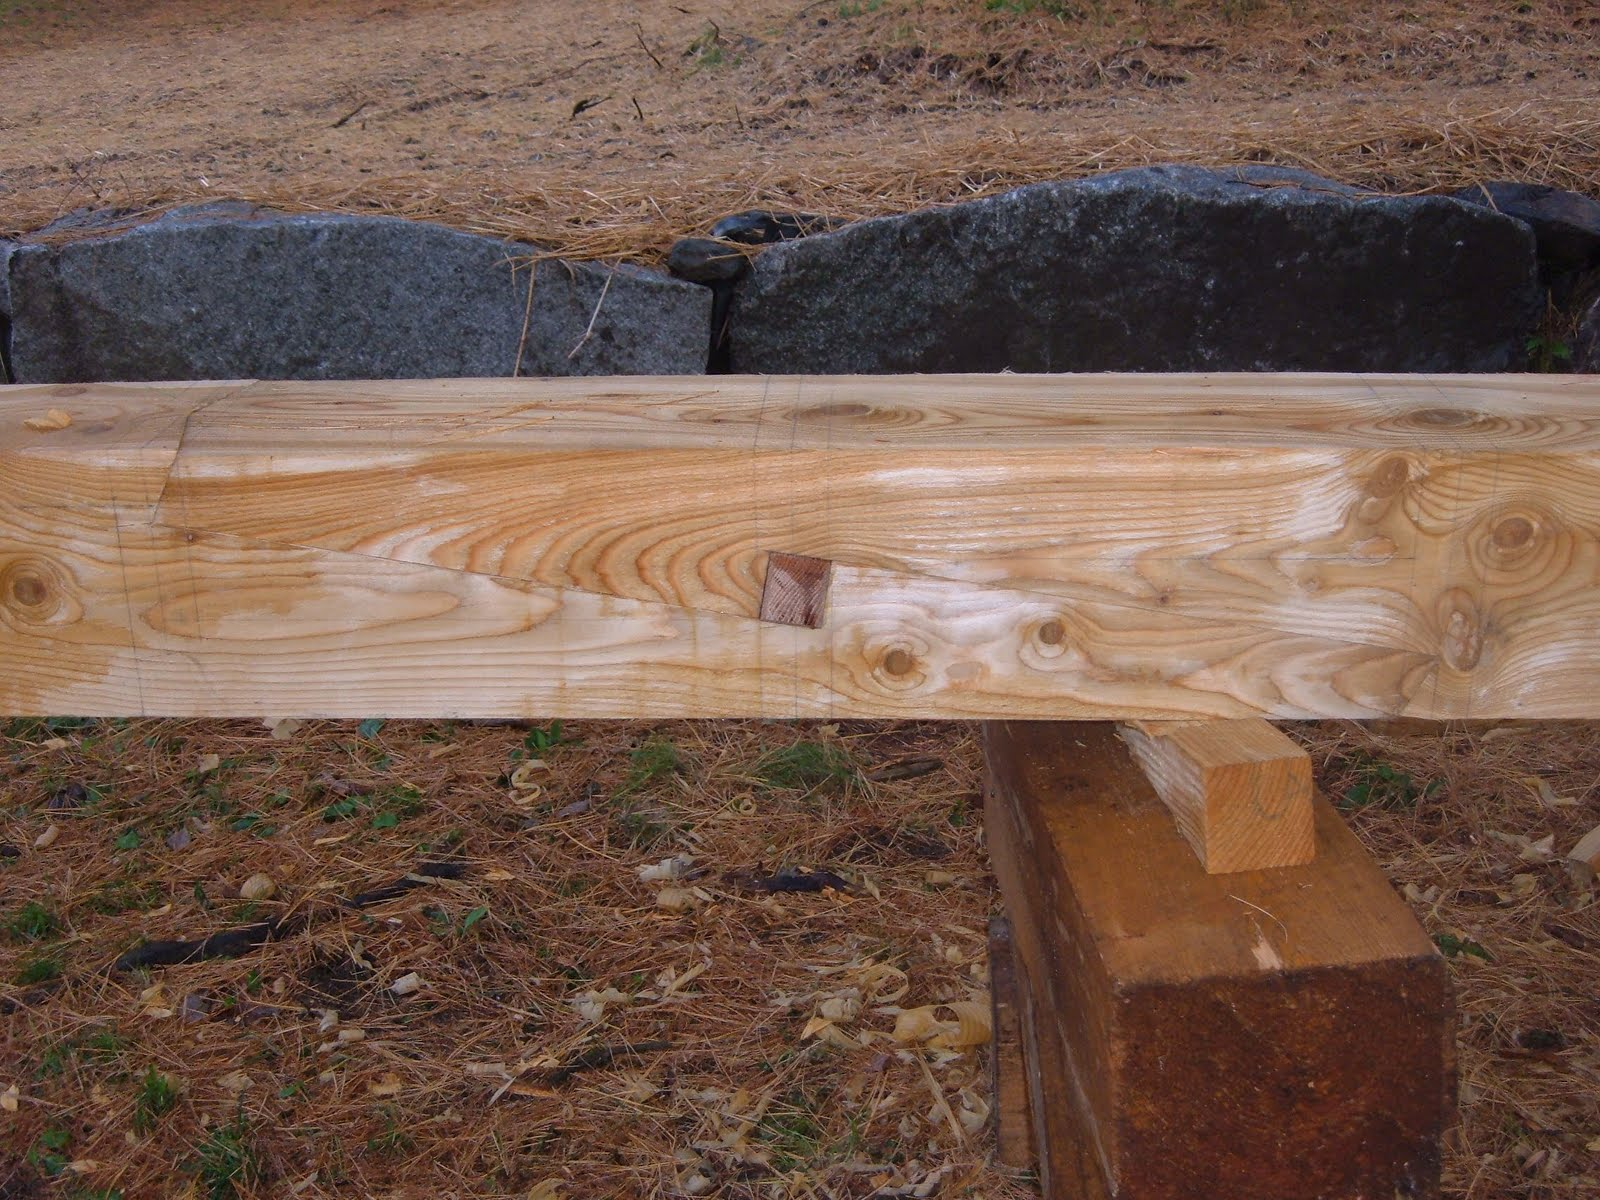 Here is the completed joint with the oak key inserted.